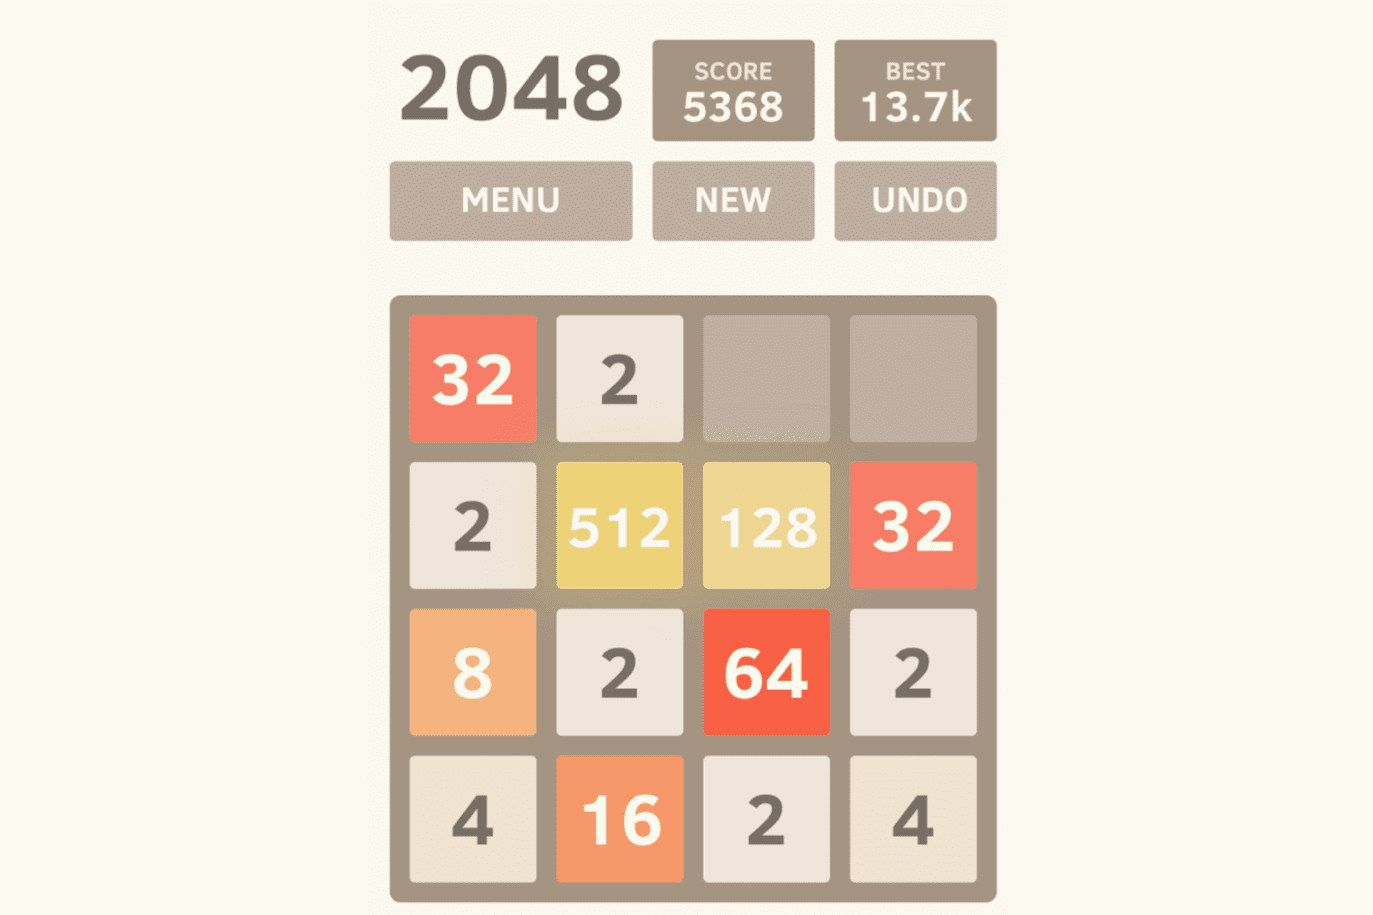 2048 by Gabriele Cirulli game for Android